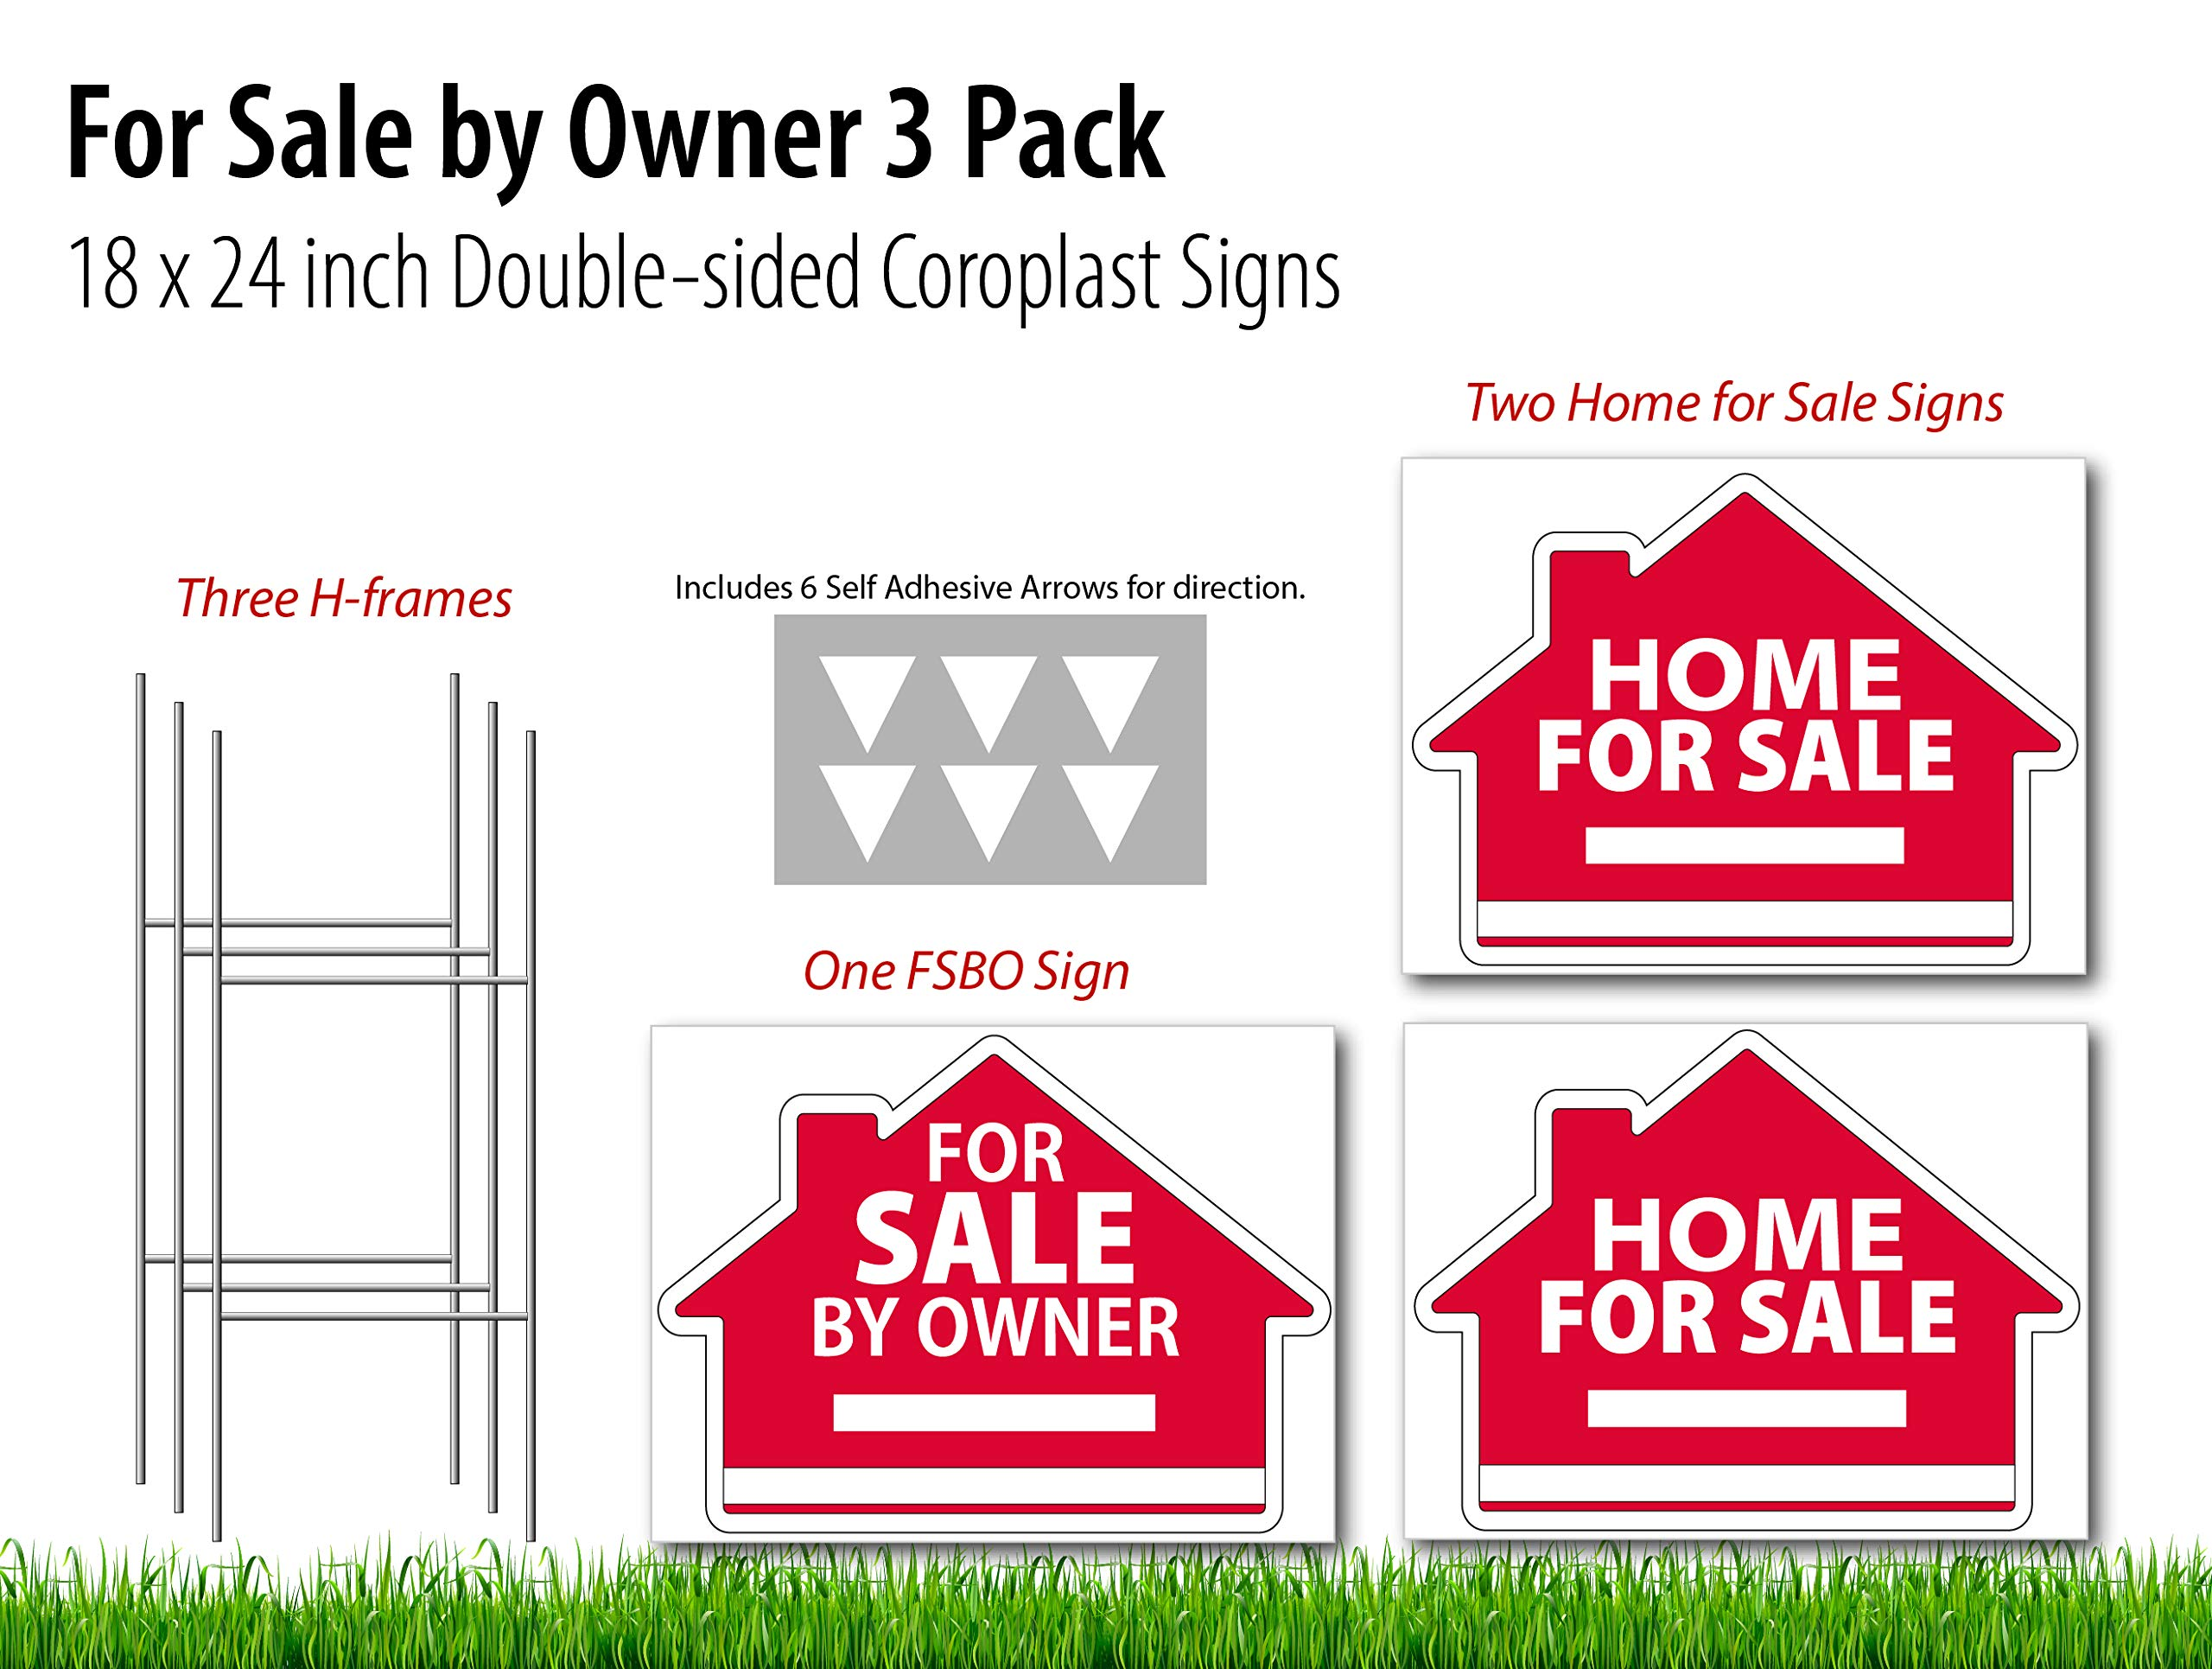 for Sale by Owner (1), Home for Sale (2) Real Estate Signs 3 Pack - 18 x 24 inch Yard Sign Kit - 3 H-Stakes - 6 Vinyl Arrow Stickers - 3 Double Sided Coroplast Yard Signs - 2 Designs